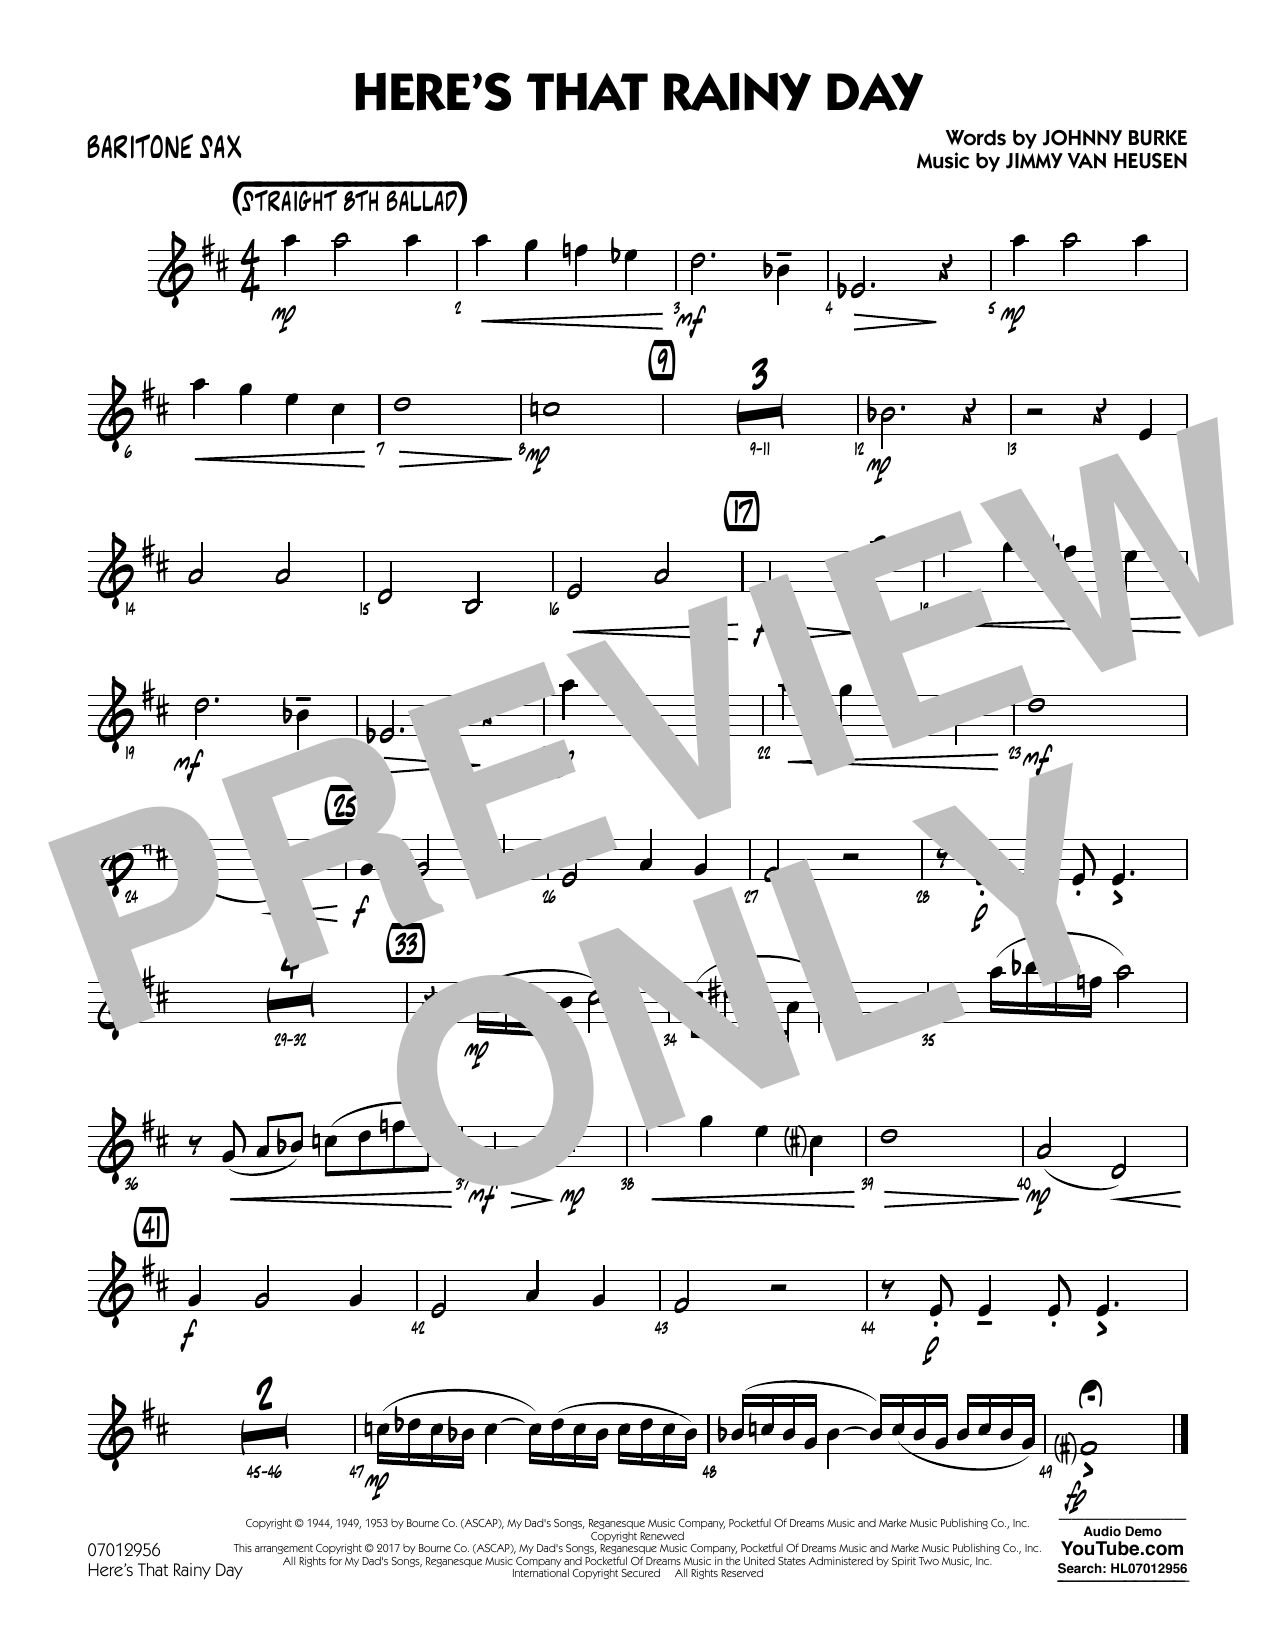 Here's That Rainy Day - Baritone Sax Sheet Music